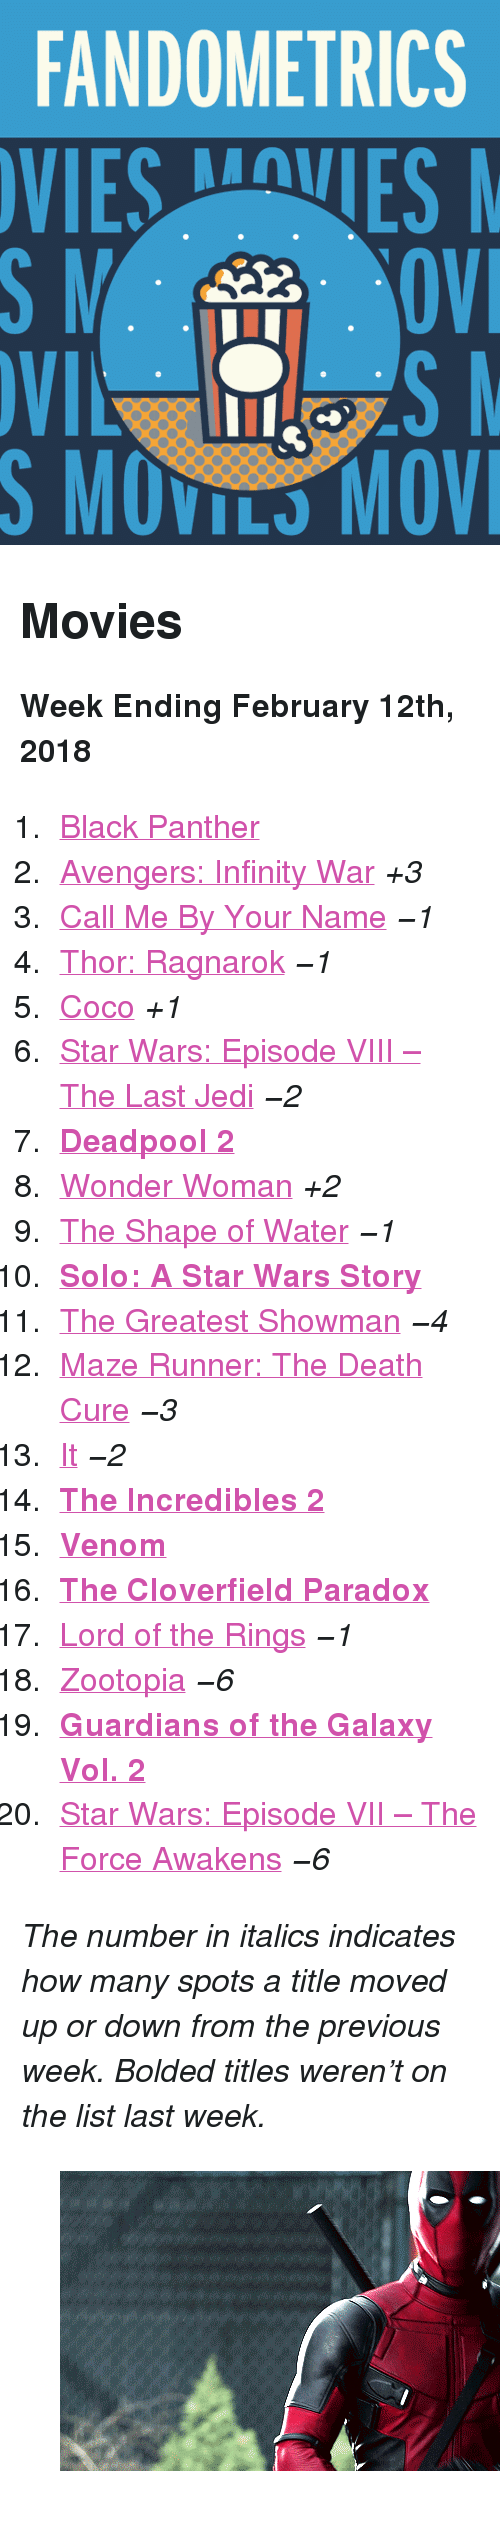 """maze: FANDOMETRICS  SMOVILS MOV <h2>Movies</h2><p><b>Week Ending February 12th, 2018</b></p><ol><li><a href=""""http://www.tumblr.com/search/black%20panther"""">Black Panther</a></li>  <li><a href=""""http://www.tumblr.com/search/infinity%20war"""">Avengers: Infinity War</a><i>+3</i></li>  <li><a href=""""http://www.tumblr.com/search/call%20me%20by%20your%20name"""">Call Me By Your Name</a><i><i>−1</i></i></li>  <li><a href=""""http://www.tumblr.com/search/thor%20ragnarok"""">Thor: Ragnarok</a><i><i>−1</i></i></li>  <li><a href=""""http://www.tumblr.com/search/coco"""">Coco</a><i>+1</i></li>  <li><a href=""""http://www.tumblr.com/search/the%20last%20jedi"""">Star Wars: Episode VIII – The Last Jedi</a><i><i>−2</i></i></li>  <li><a href=""""http://www.tumblr.com/search/deadpool""""><b>Deadpool 2</b></a></li>  <li><a href=""""http://www.tumblr.com/search/wonder%20woman"""">Wonder Woman</a><i>+2</i></li>  <li><a href=""""http://www.tumblr.com/search/the%20shape%20of%20water"""">The Shape of Water</a><i><i>−1</i></i></li>  <li><a href=""""http://www.tumblr.com/search/solo:%20a%20star%20wars%20story""""><b>Solo: A Star Wars Story</b></a></li>  <li><a href=""""http://www.tumblr.com/search/the%20greatest%20showman"""">The Greatest Showman</a><i><i>−4</i></i></li>  <li><a href=""""http://www.tumblr.com/search/the%20maze%20runner"""">Maze Runner: The Death Cure</a><i><i>−3</i></i></li>  <li><a href=""""http://www.tumblr.com/search/it%202017"""">It</a><i><i>−2</i></i></li>  <li><a href=""""http://www.tumblr.com/search/the%20incredibles""""><b>The Incredibles 2</b></a></li>  <li><a href=""""http://www.tumblr.com/search/venom""""><b>Venom</b></a></li>  <li><a href=""""http://www.tumblr.com/search/the%20cloverfield%20paradox""""><b>The Cloverfield Paradox</b></a></li>  <li><a href=""""http://www.tumblr.com/search/lotr"""">Lord of the Rings</a><i><i>−1</i></i></li>  <li><a href=""""http://www.tumblr.com/search/zootopia"""">Zootopia</a><i><i>−6</i></i></li>  <li><a href=""""http://www.tumblr.com/search/guardians%20of%20the%20galaxy""""><b>Guardians of the Galaxy Vol. 2</b></a></li>  <li><a hre"""